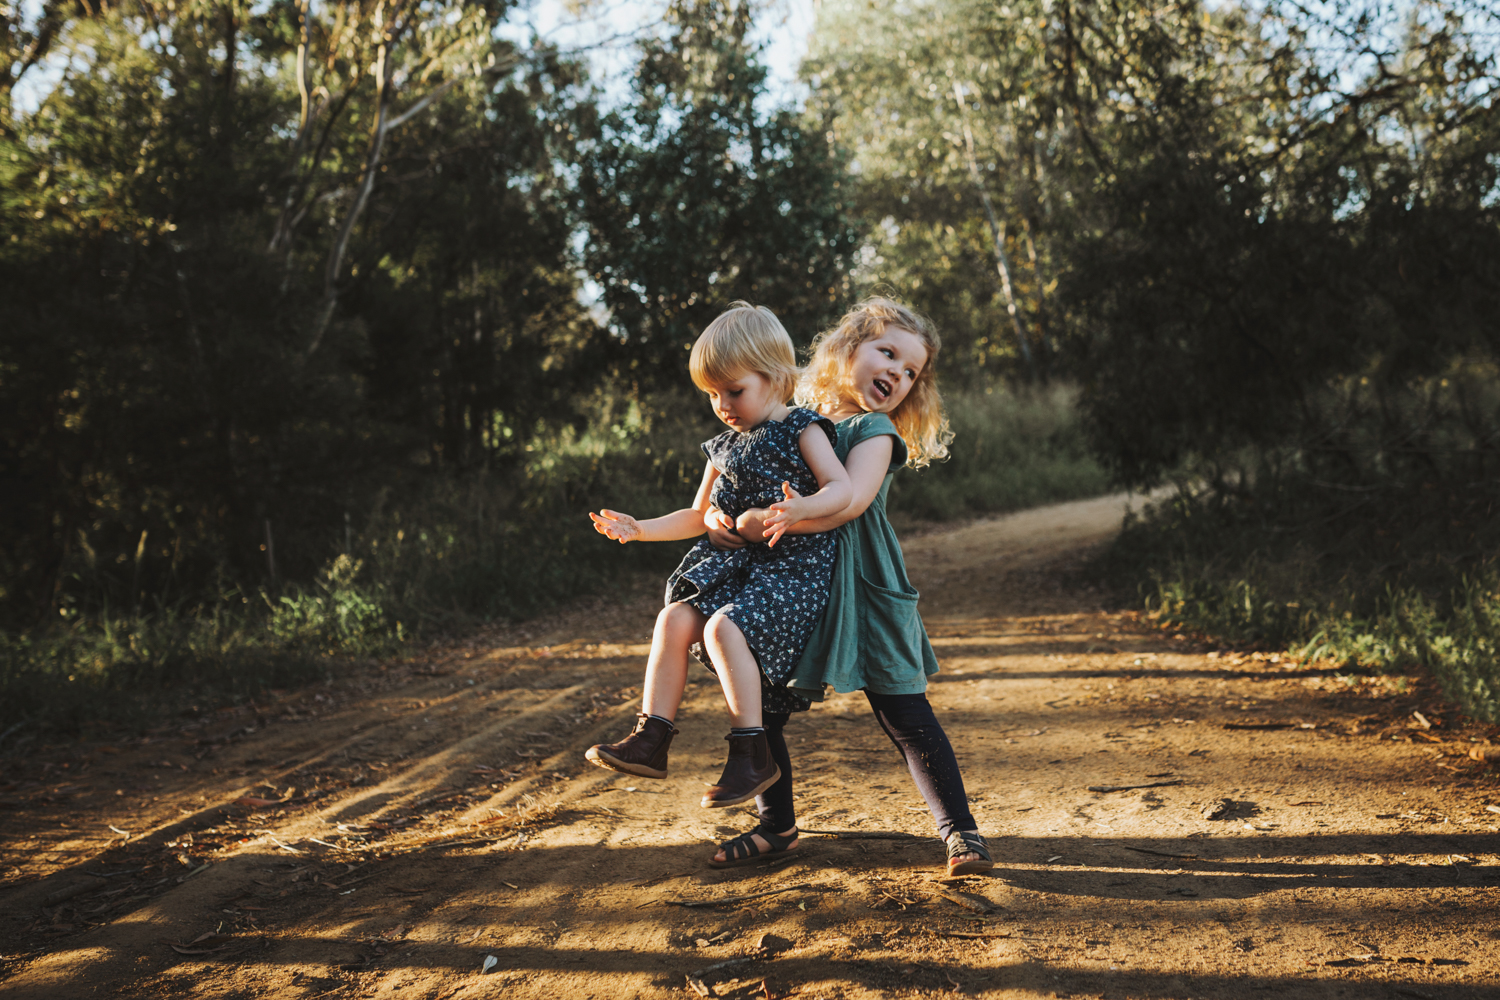 Girls play in nature together in beautiful light in Brisbane by